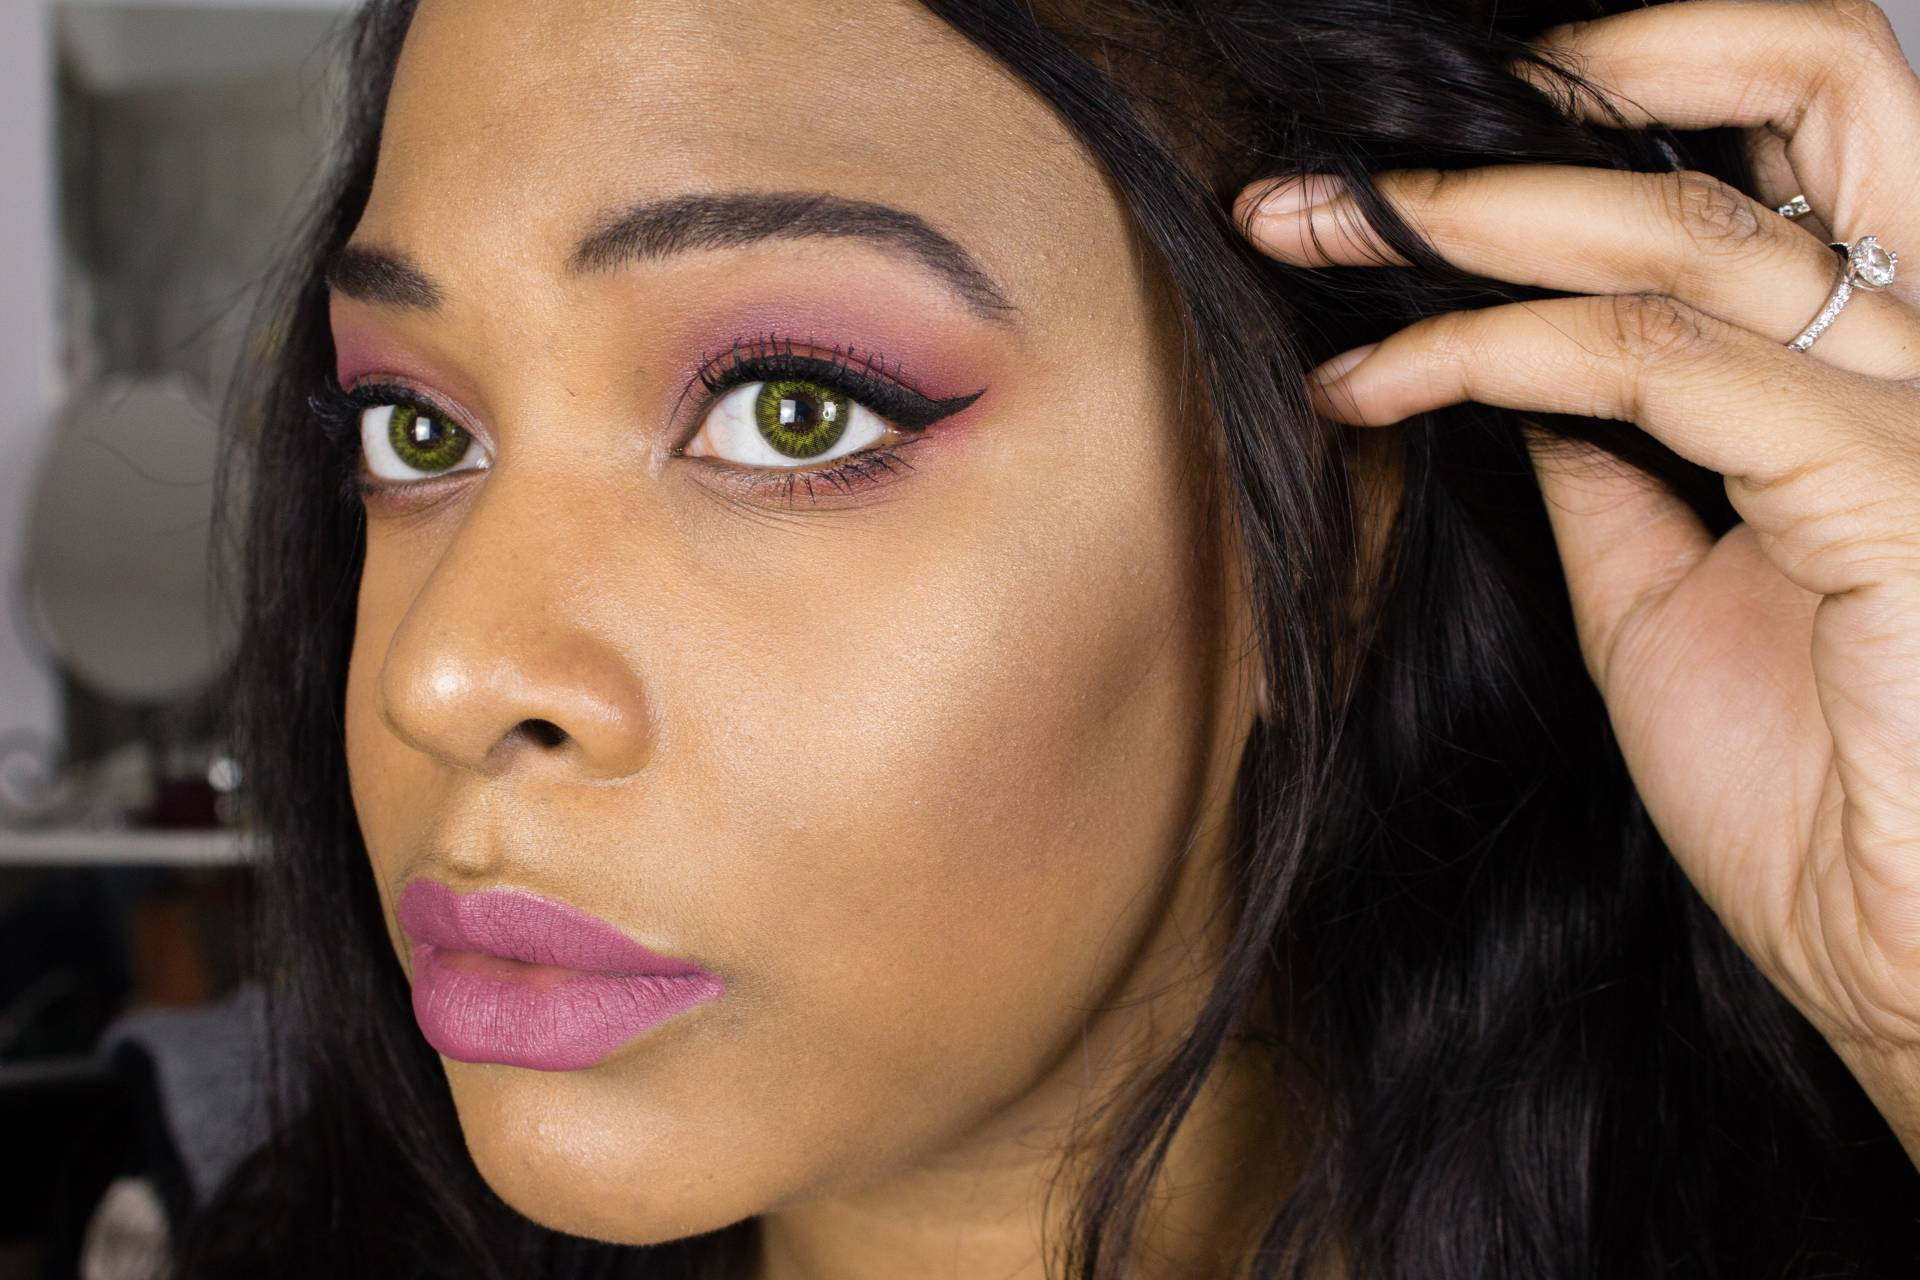 Pastel Grunge makeup on dark skin